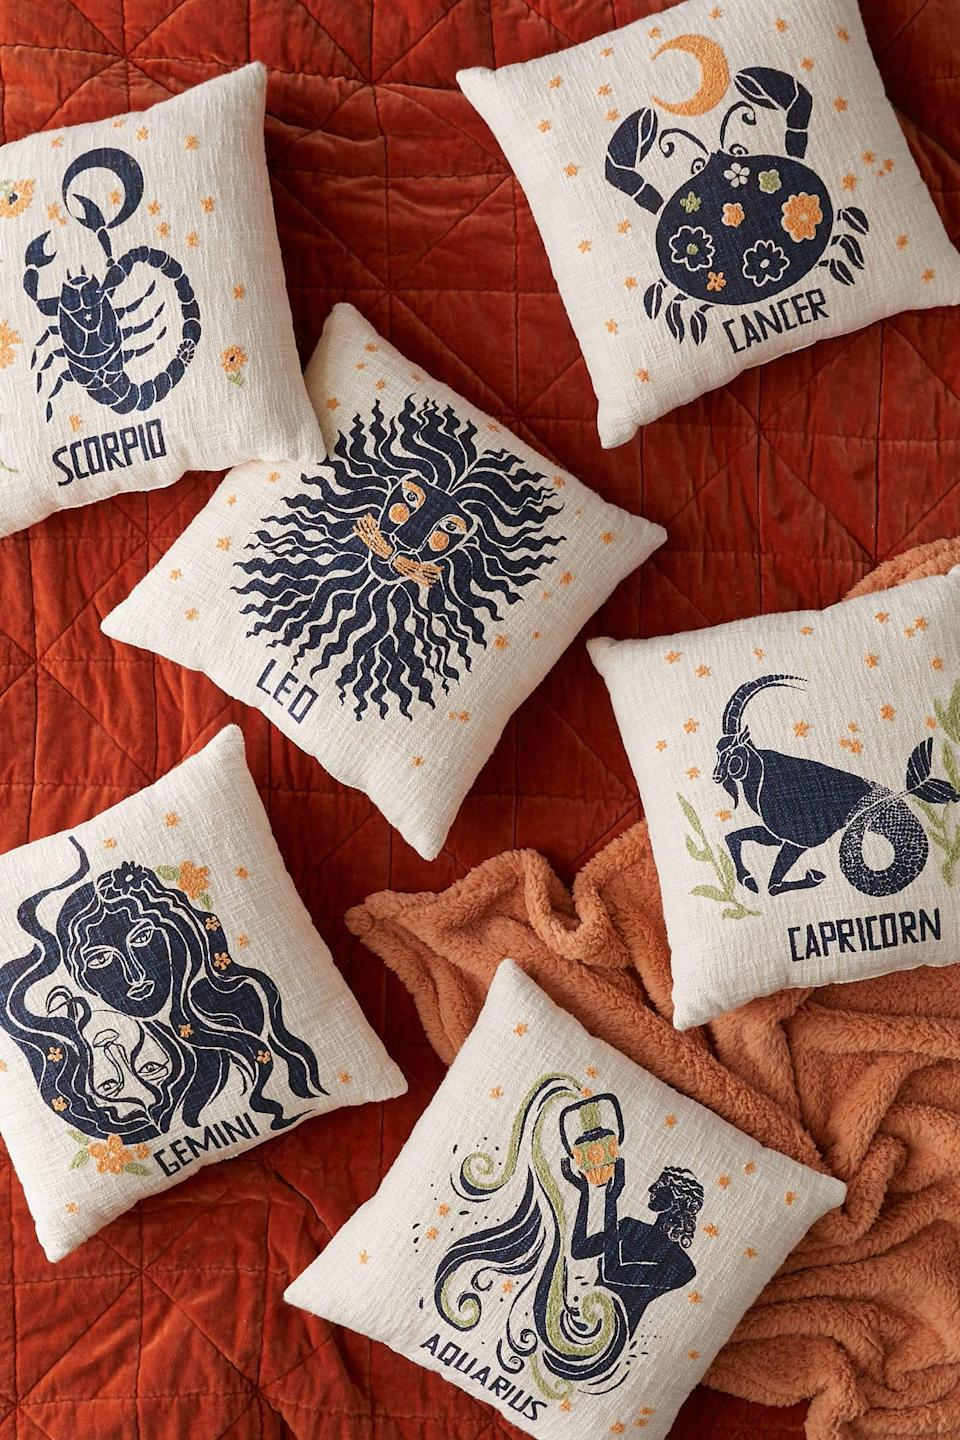 """<p>This <a href=""""https://www.popsugar.com/buy/Zodiac-Throw-Pillow-555120?p_name=Zodiac%20Throw%20Pillow&retailer=urbanoutfitters.com&pid=555120&price=39&evar1=casa%3Auk&evar9=47315088&evar98=https%3A%2F%2Fwww.popsugar.com%2Fhome%2Fphoto-gallery%2F47315088%2Fimage%2F47315187%2FZodiac-Throw-Pillow&list1=shopping%2Curban%20outfitters%2Capartments%2Csmall%20space%20living%2Capartment%20living%2Chome%20shopping&prop13=api&pdata=1"""" class=""""link rapid-noclick-resp"""" rel=""""nofollow noopener"""" target=""""_blank"""" data-ylk=""""slk:Zodiac Throw Pillow"""">Zodiac Throw Pillow</a> ($39, originally $49) makes a cute personalized gift.</p>"""